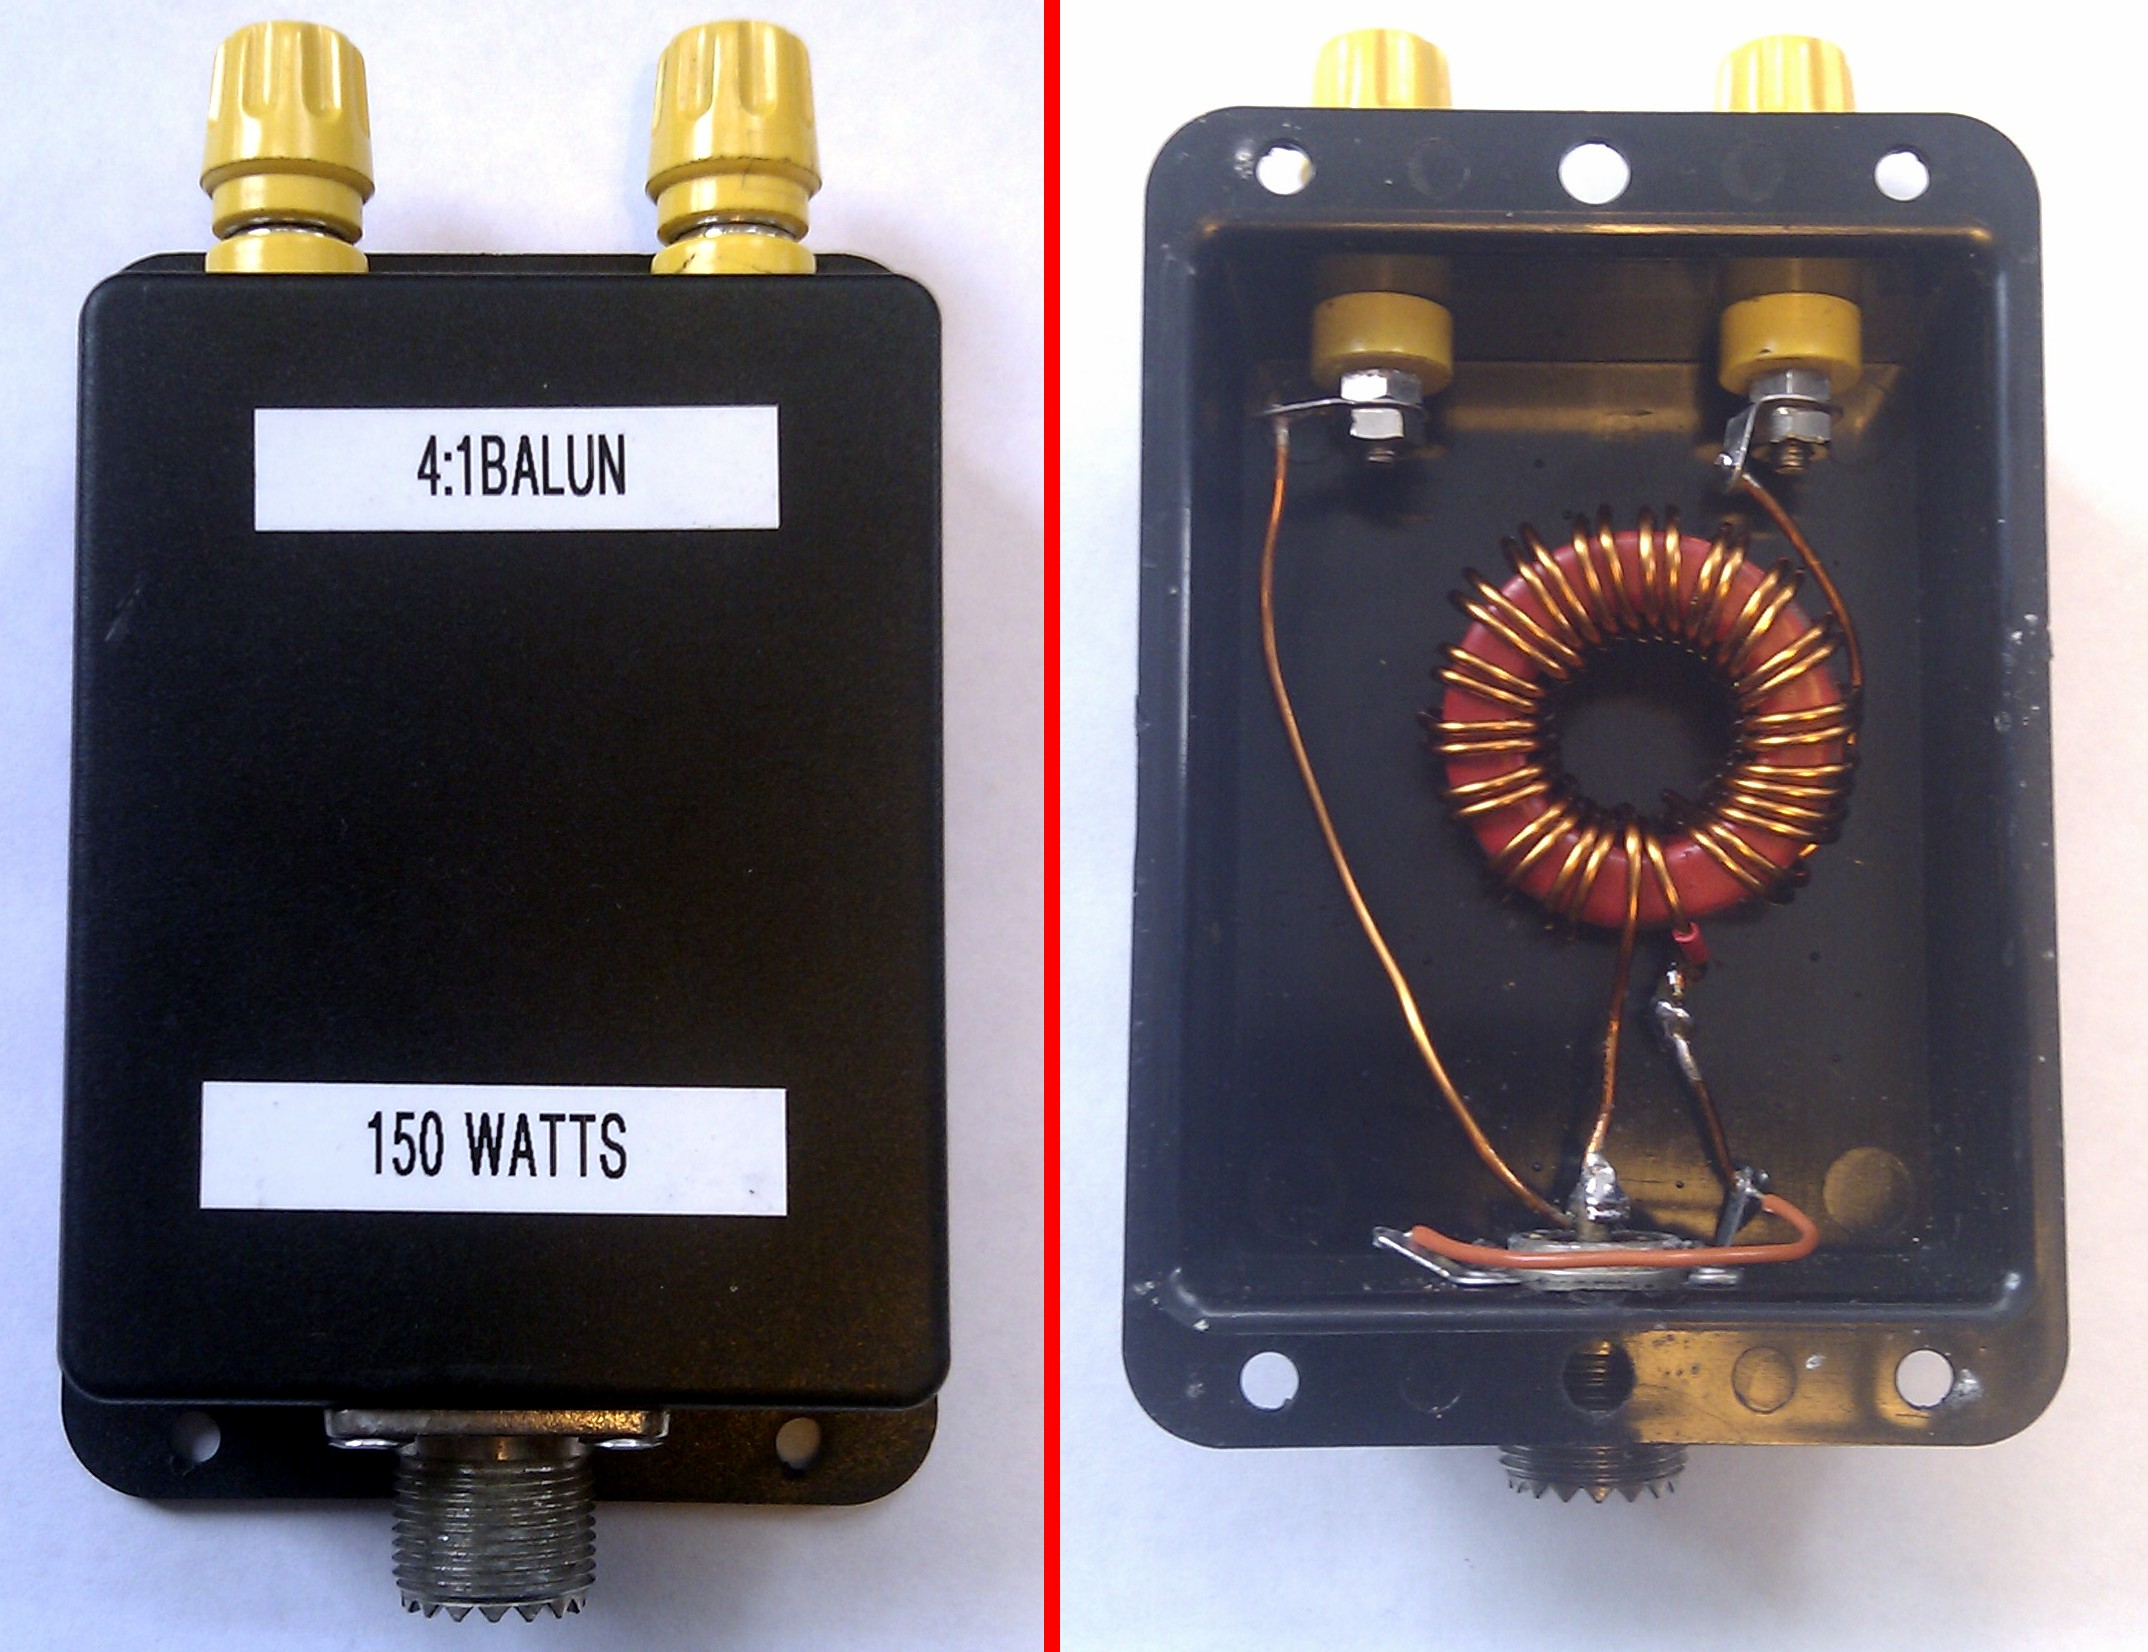 My Homebrew 4:1 Balun